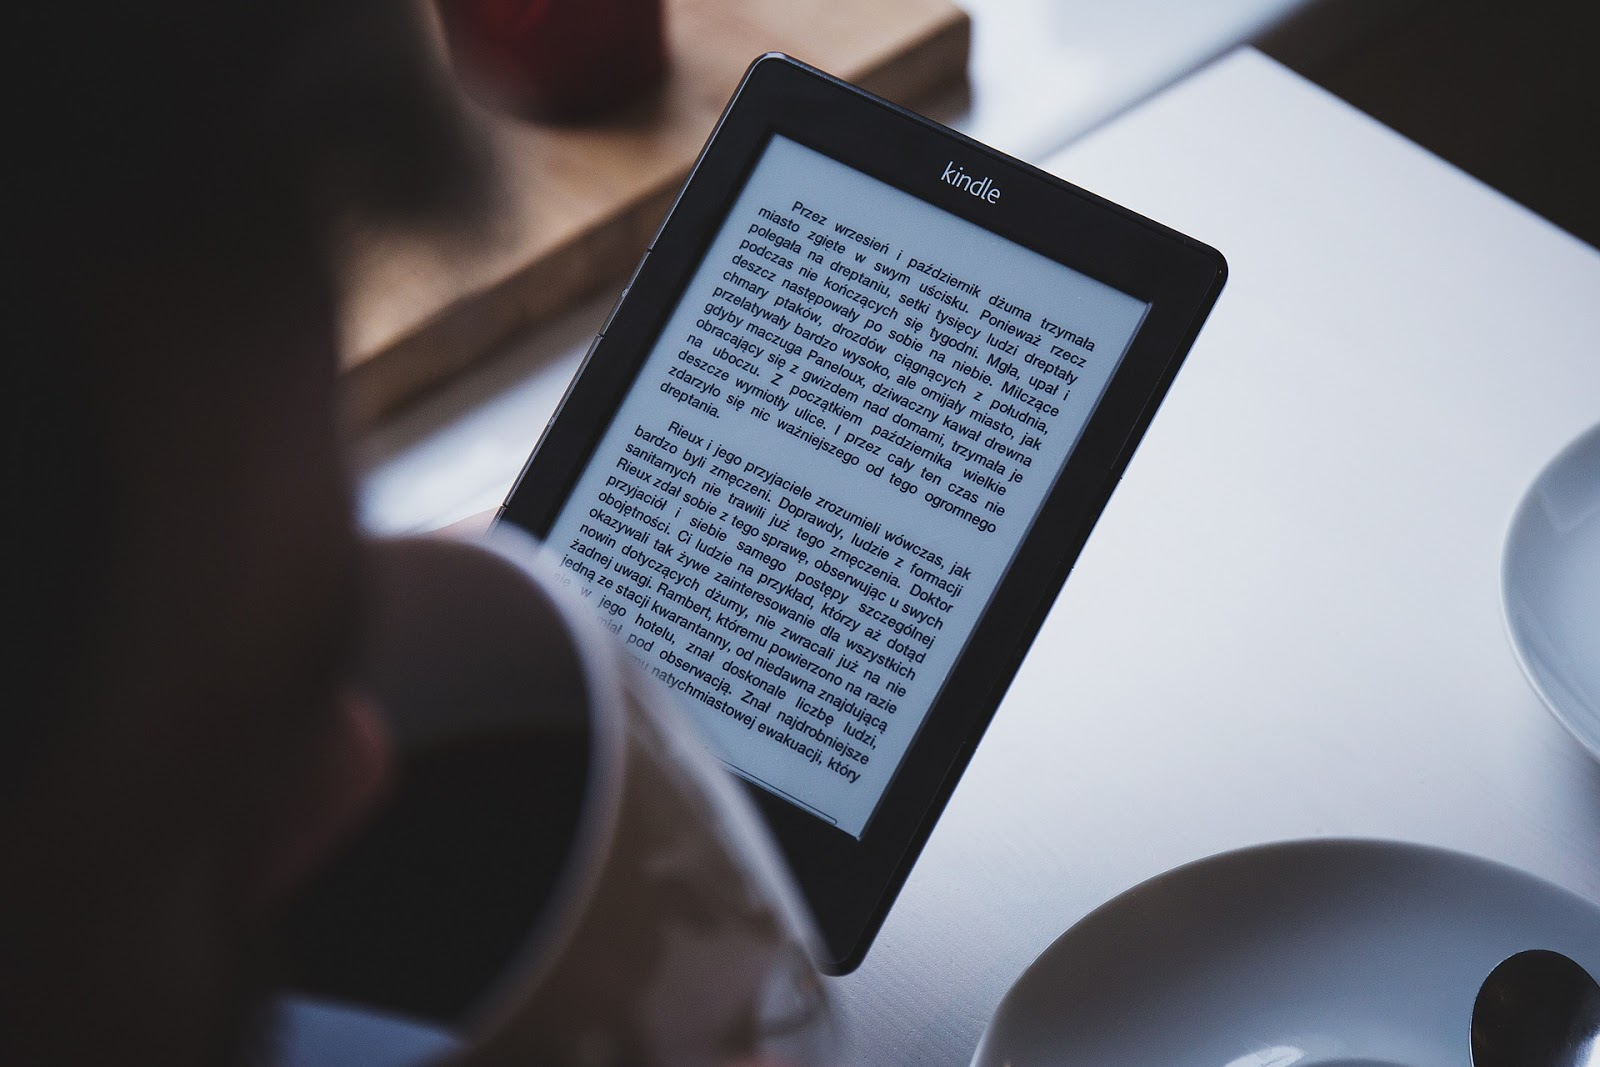 Como Publicar Un Libro En Internet Cómo Publicar En Amazon Con Kindle Direct Publishing Lj